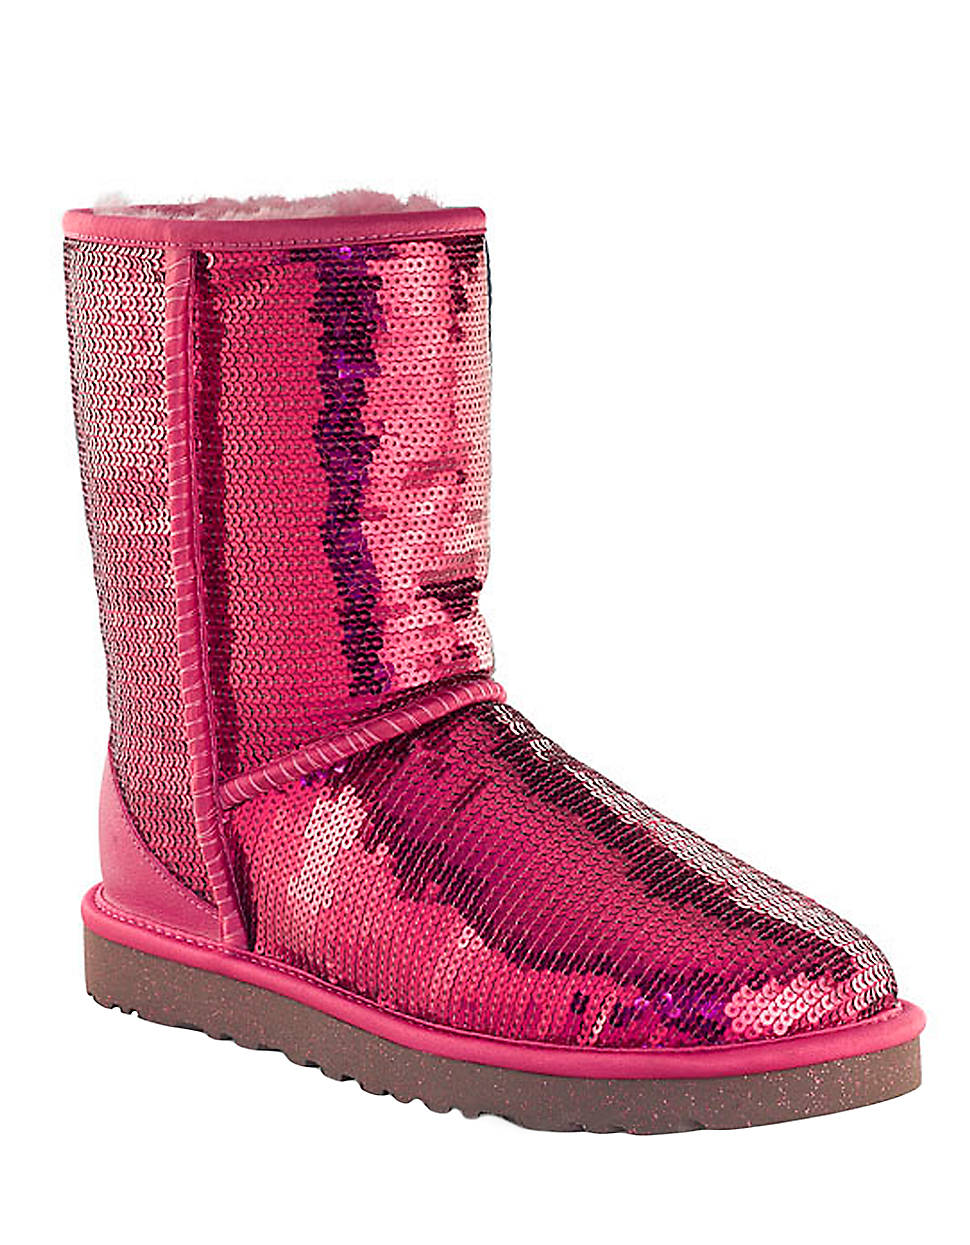 Ugg Classic Sequin Embellished Boots In Pink Lyst